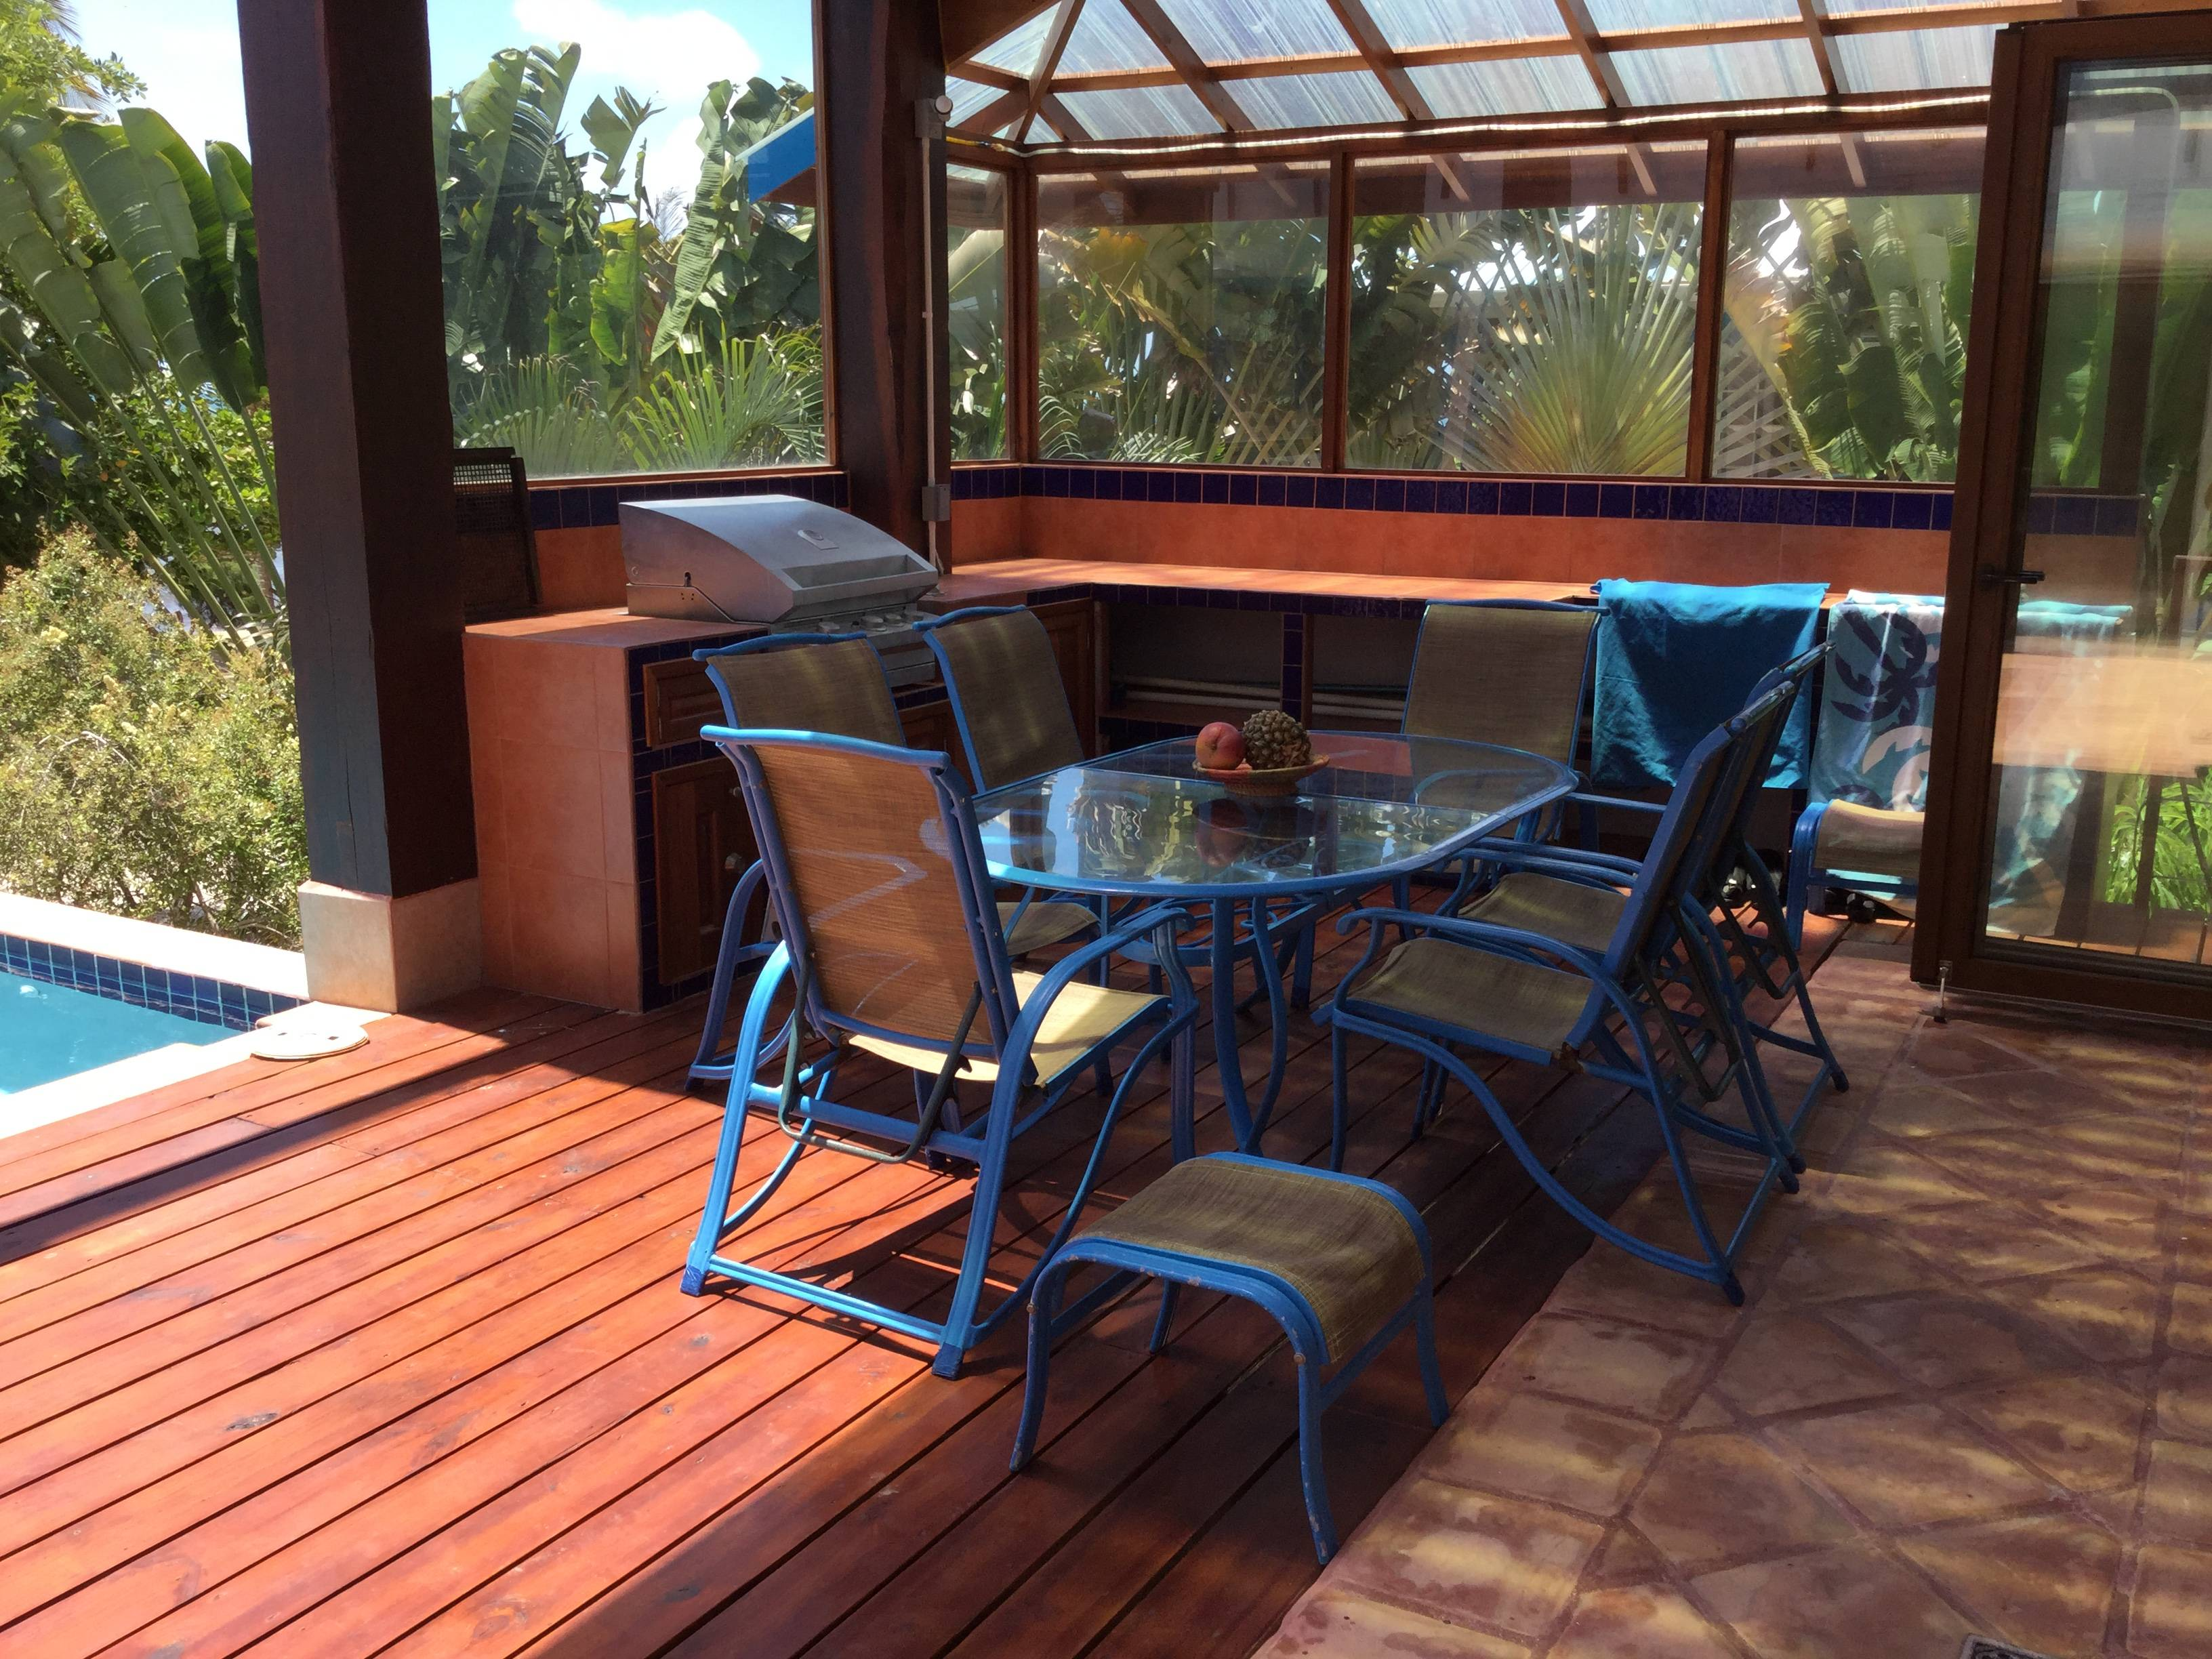 outdoor eating area / BBQ